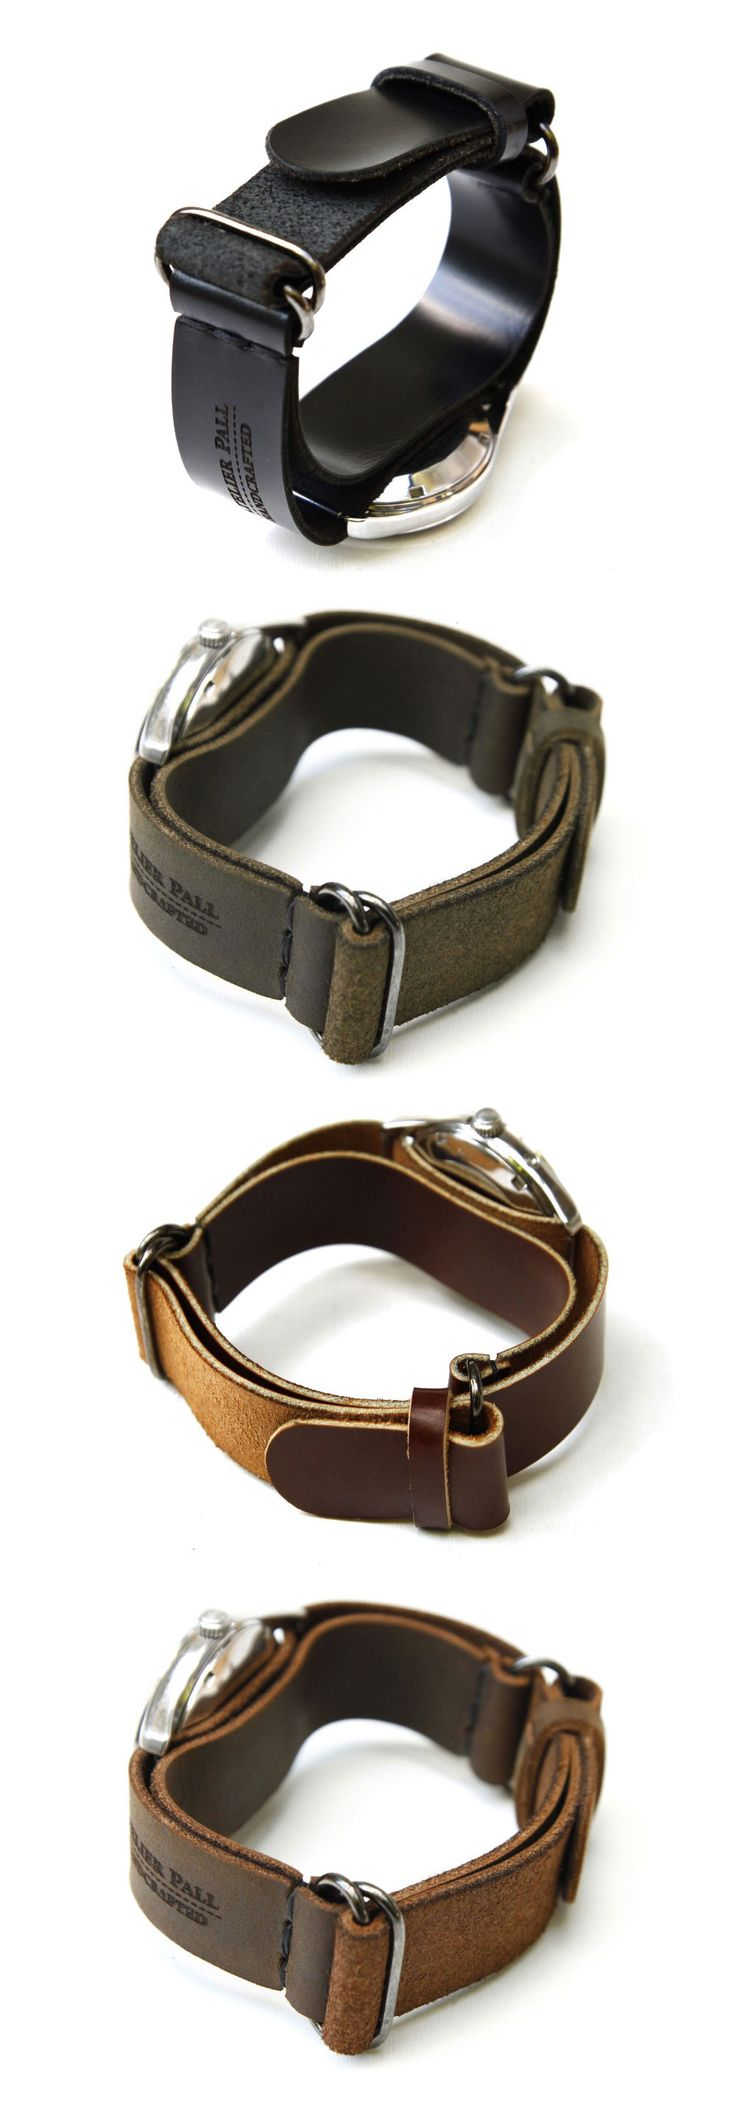 Atelier Pall watch straps available at AtelierPALL.com